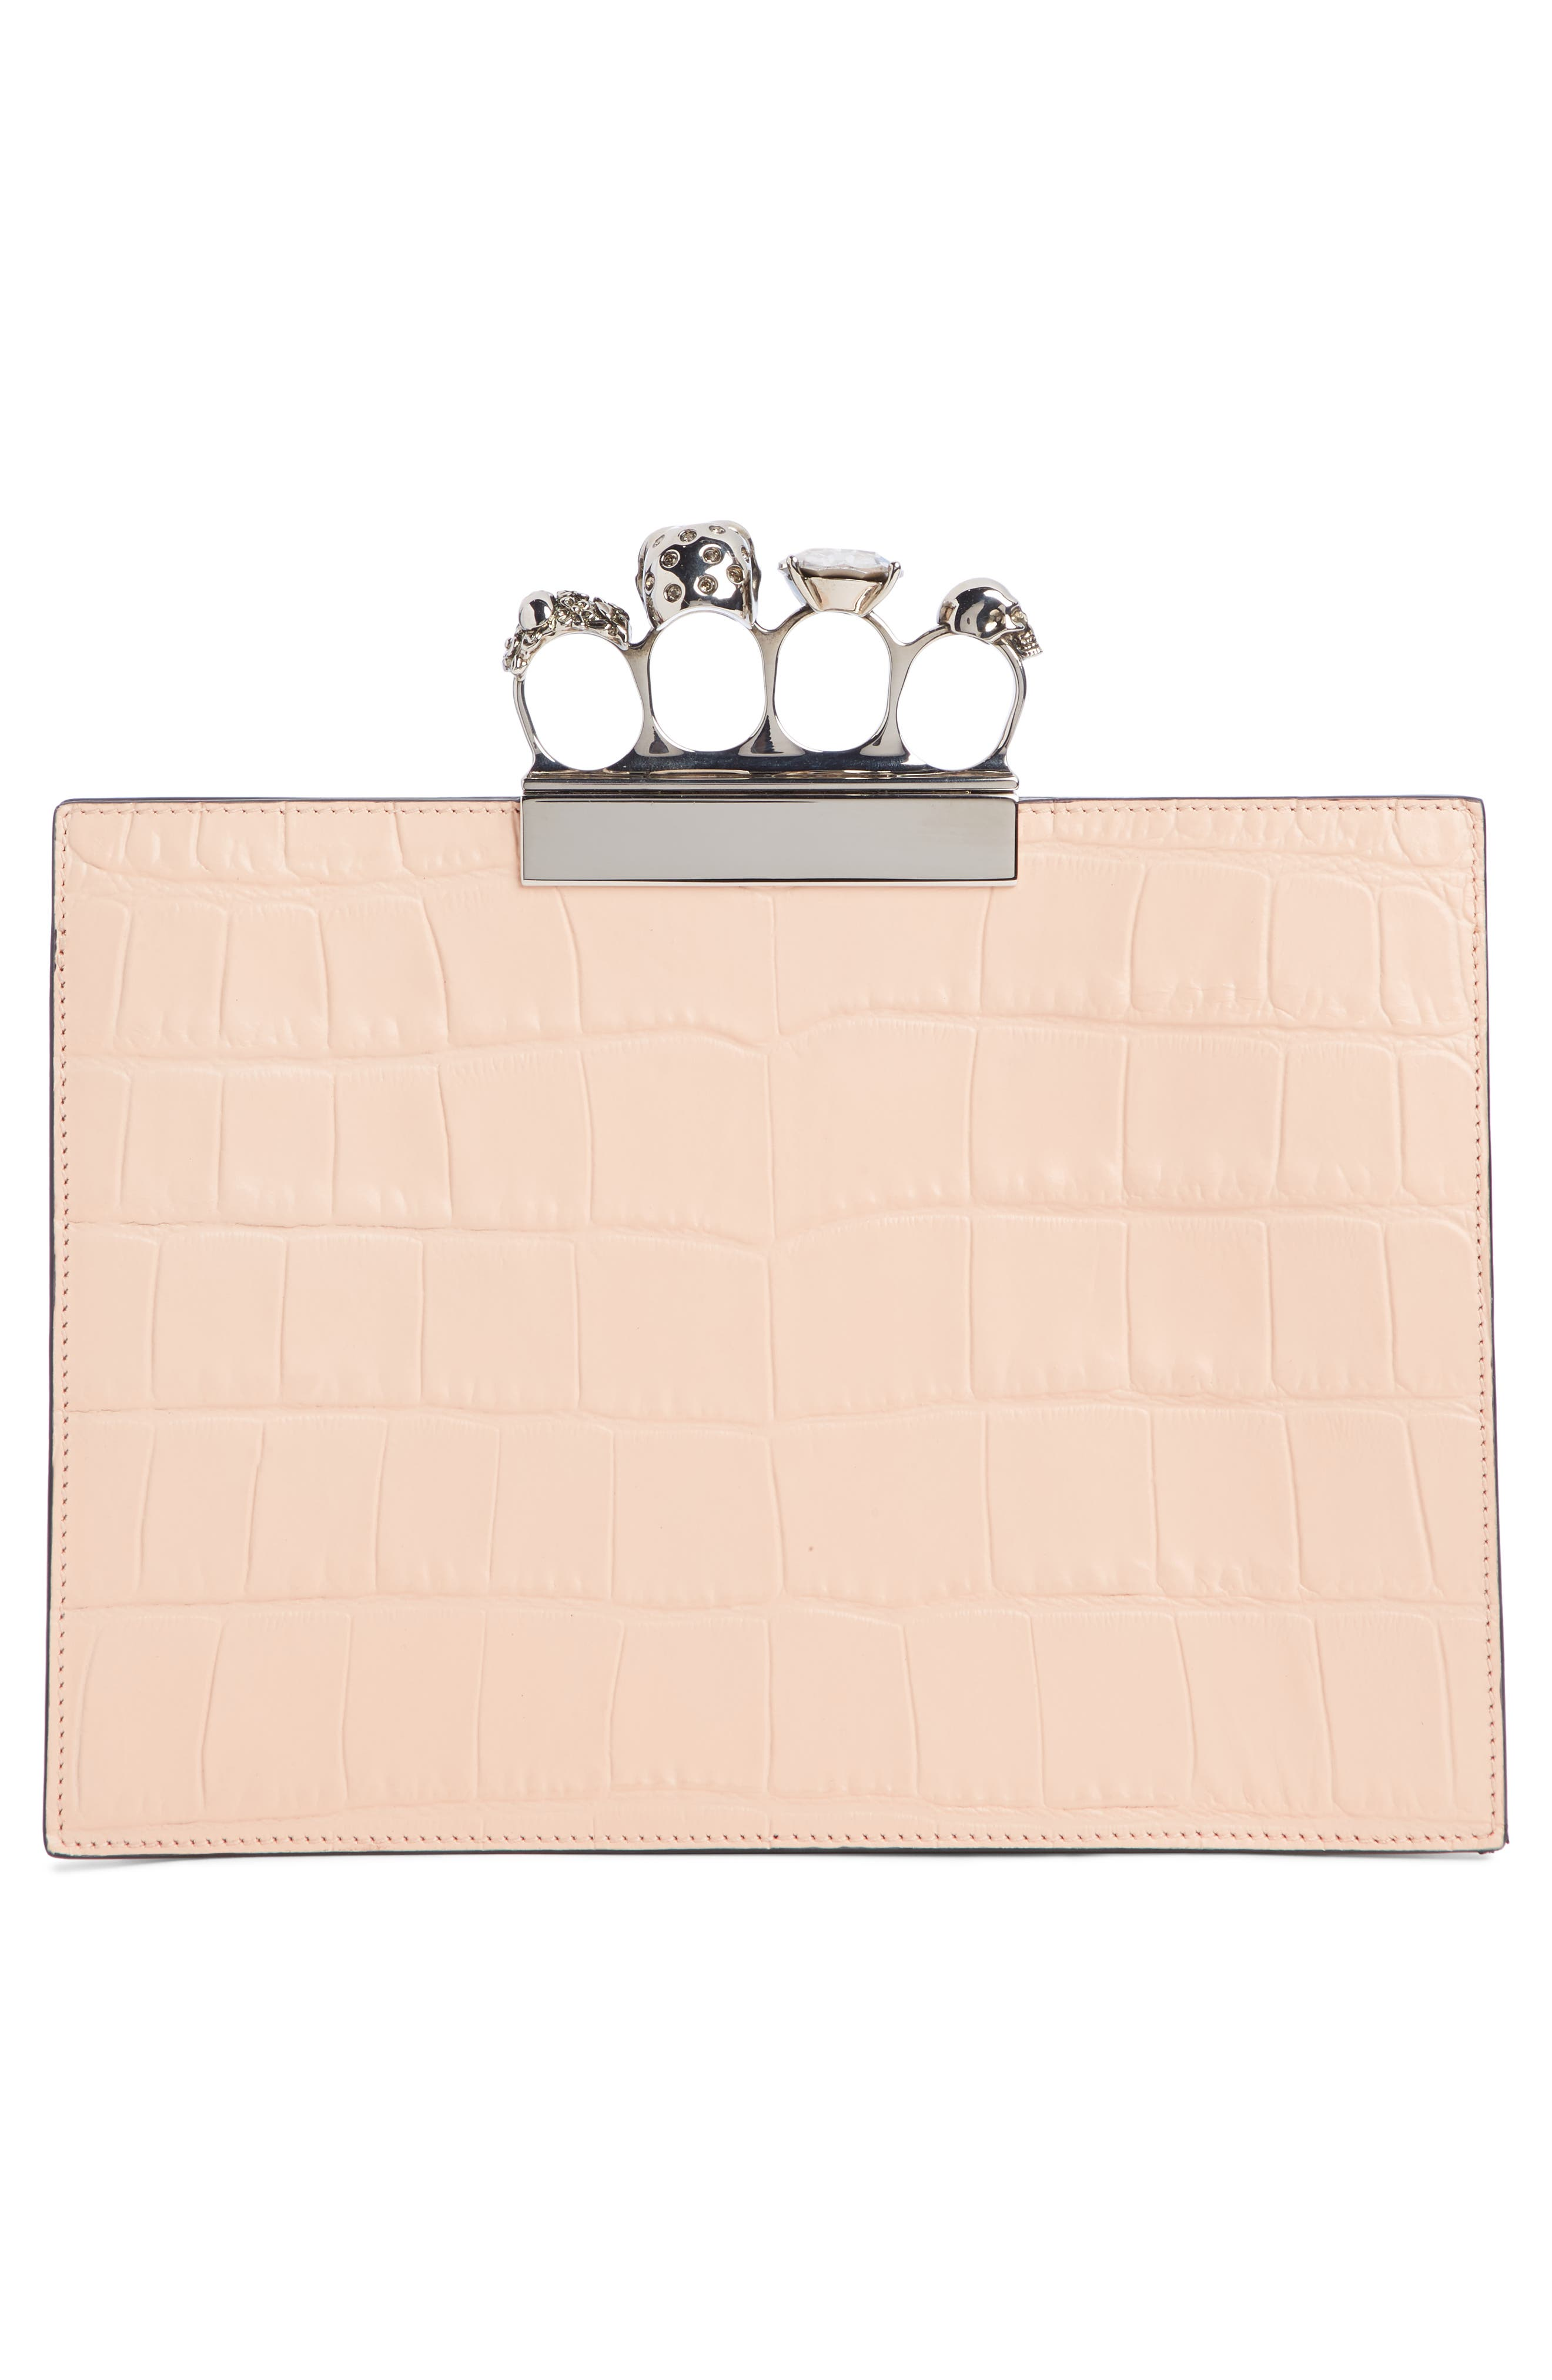 Croc Embossed Leather Knuckle Clutch,                             Alternate thumbnail 3, color,                             COLURIE/ IVORY